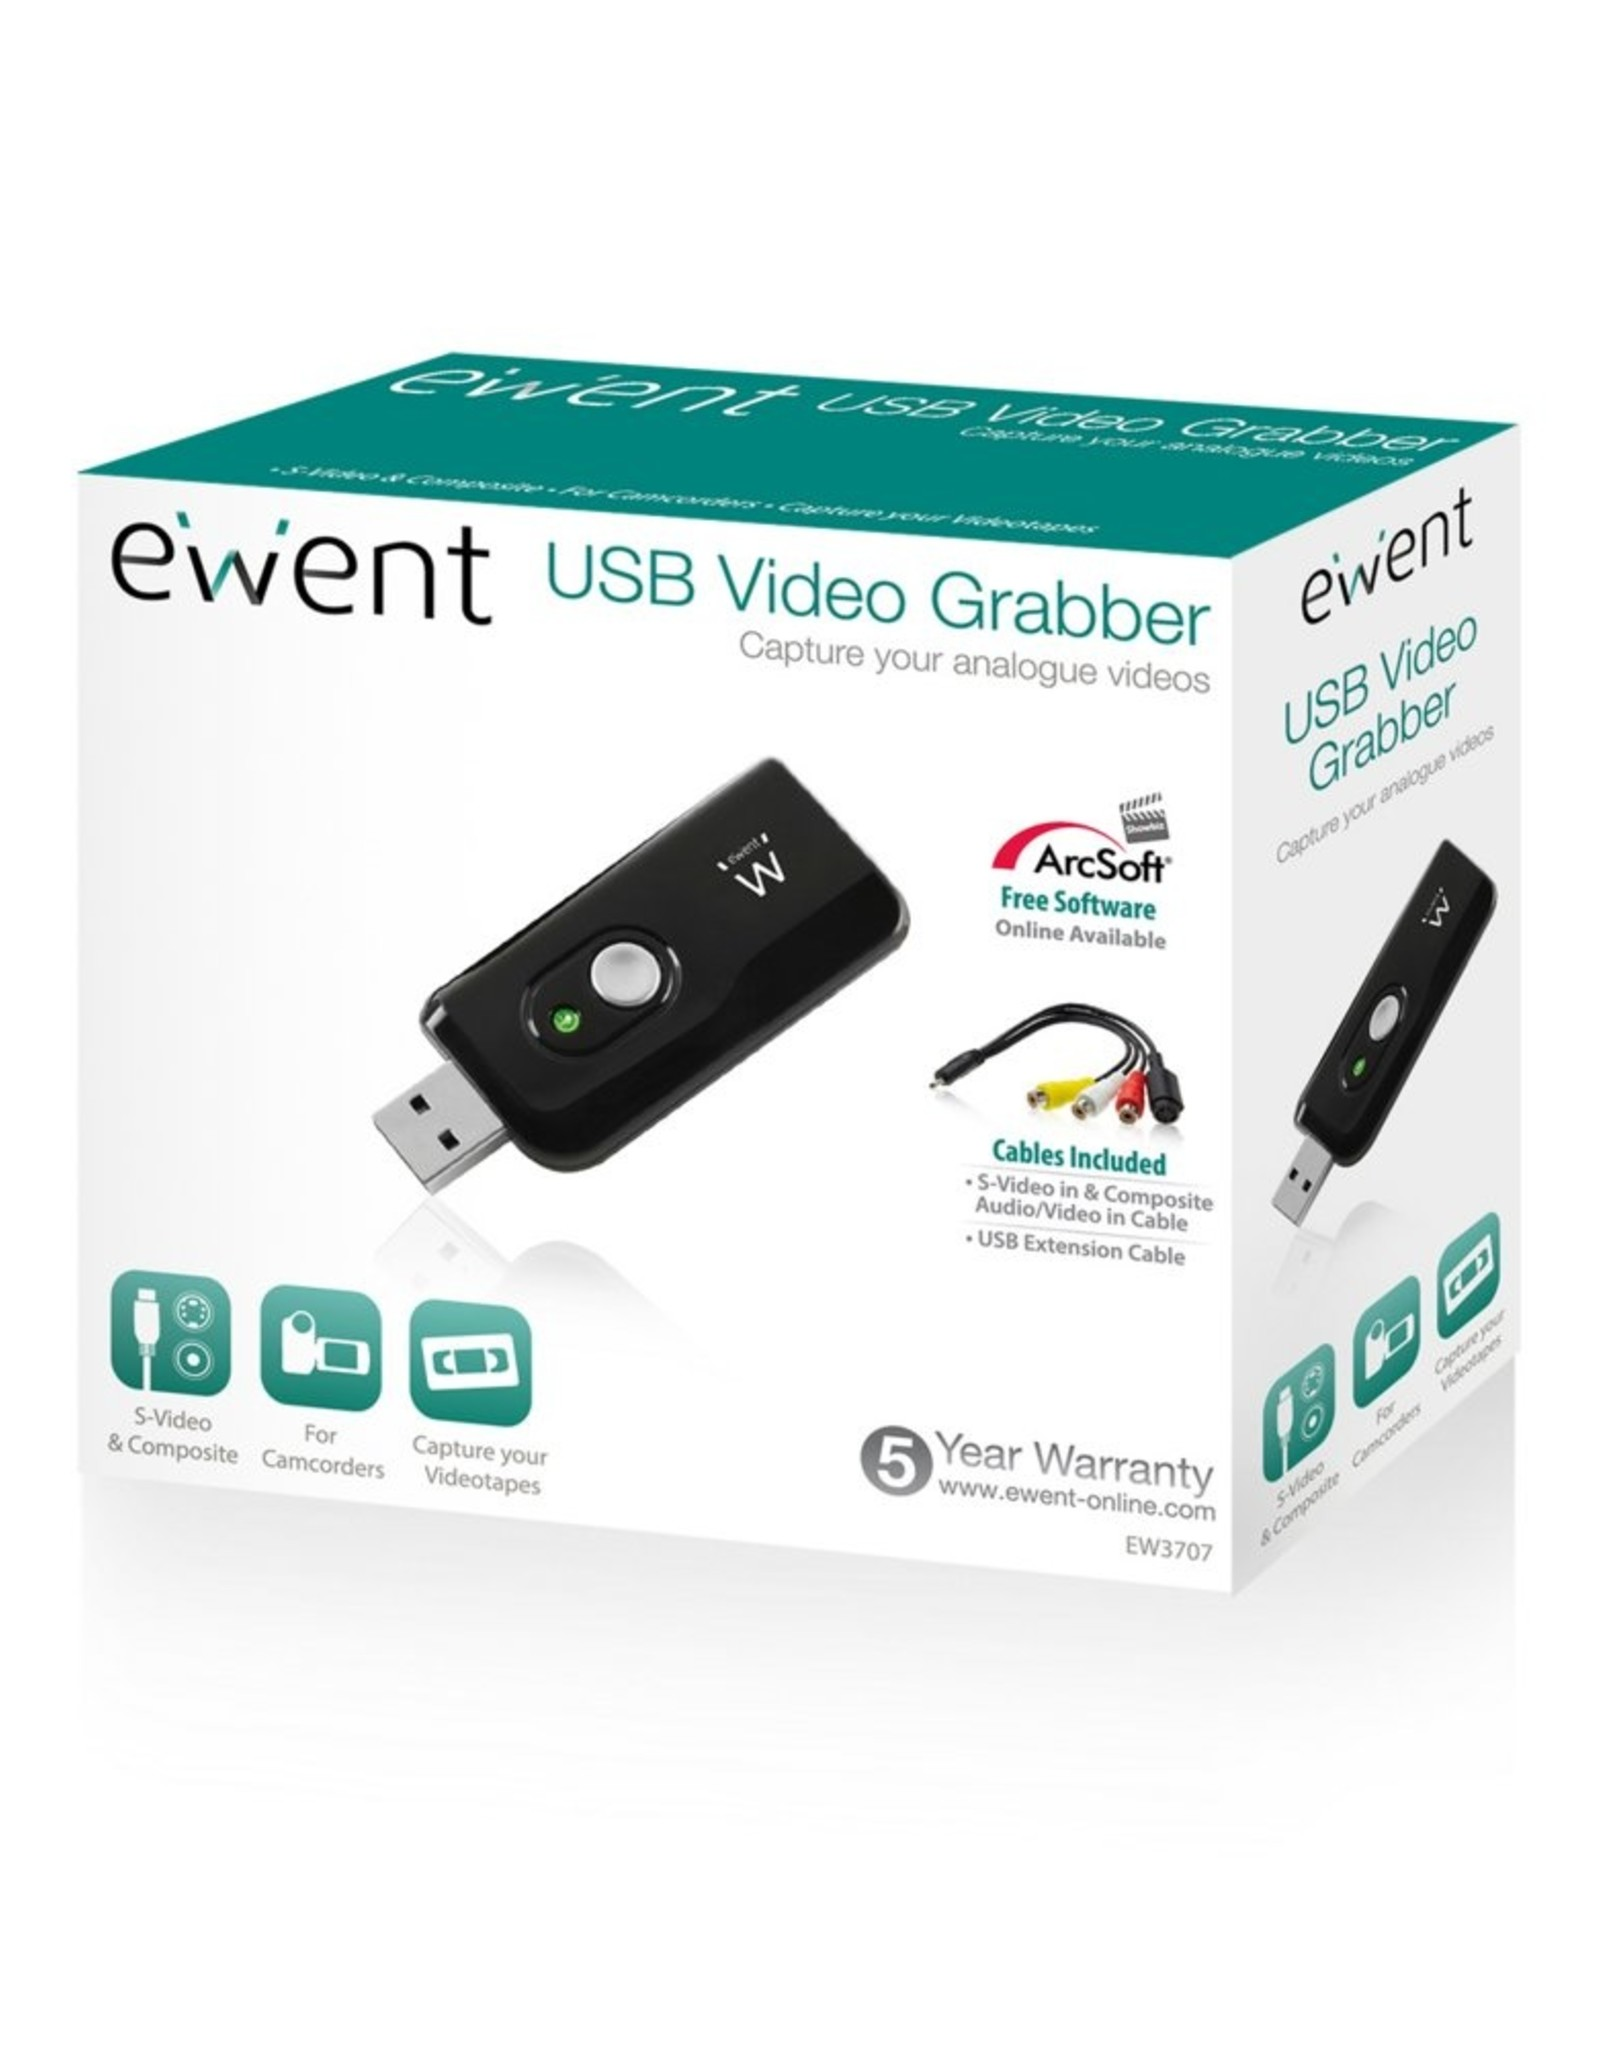 USB 2.0 Video Grabber with free software